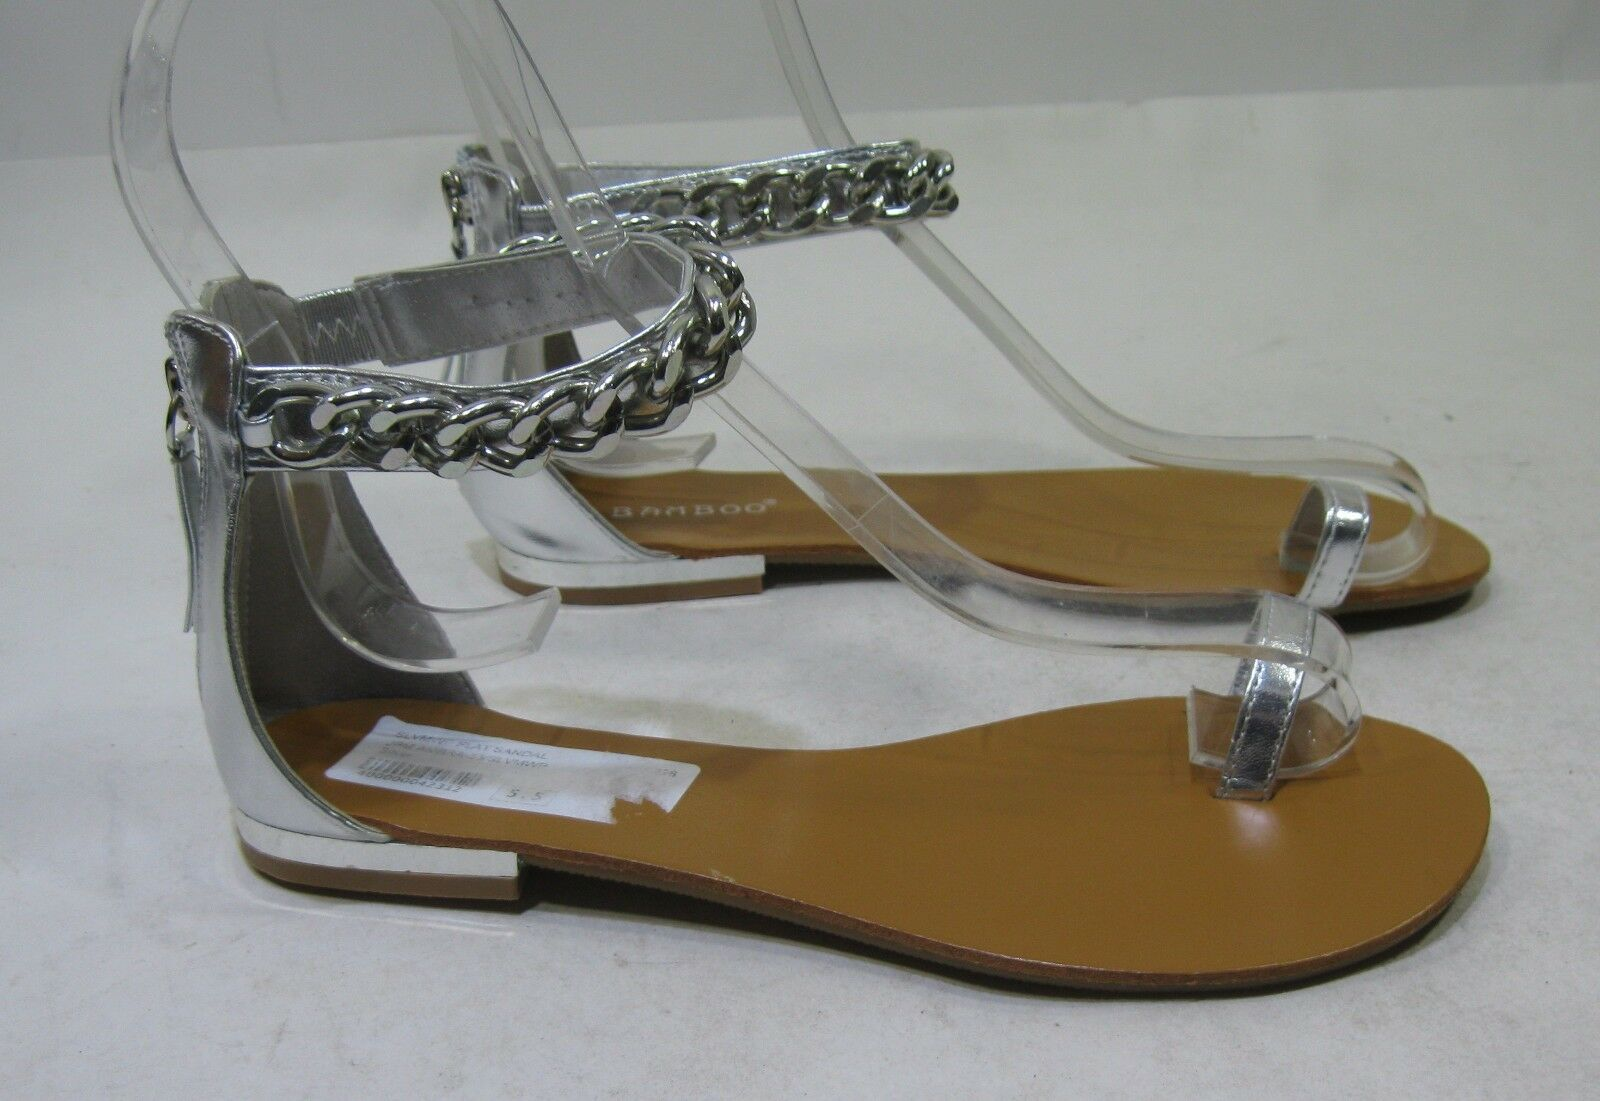 Summer Silver Womens Shoes Sandals Toe/Ankle Strap Chain Sexy Sandals Shoes Size 7.5 b6167d